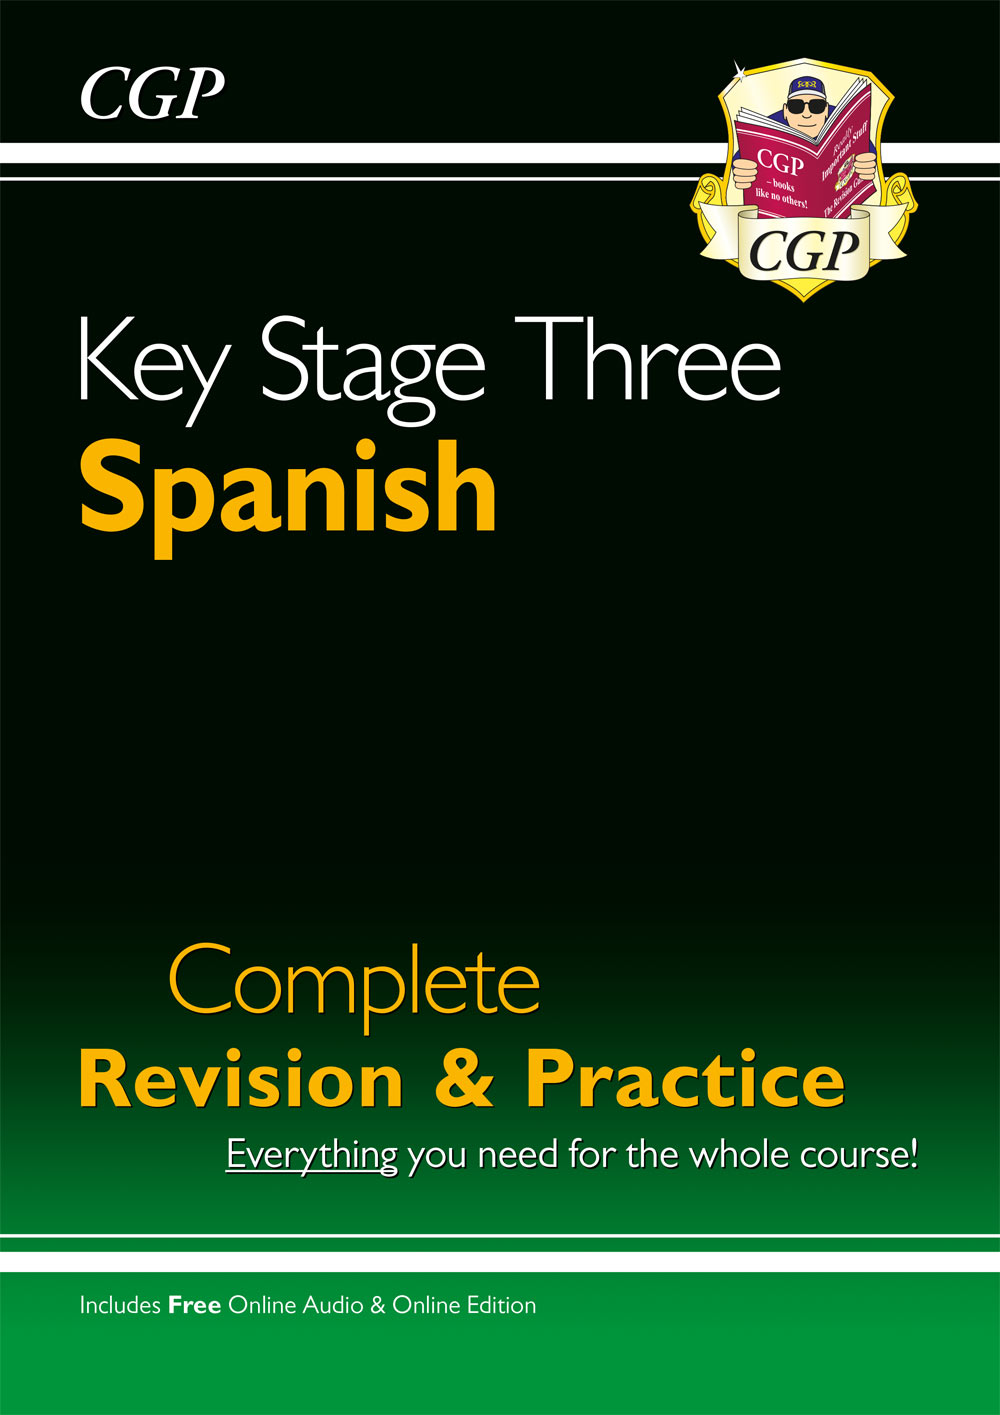 SPHS32 - New KS3 Spanish Complete Revision & Practice with Free Online Audio